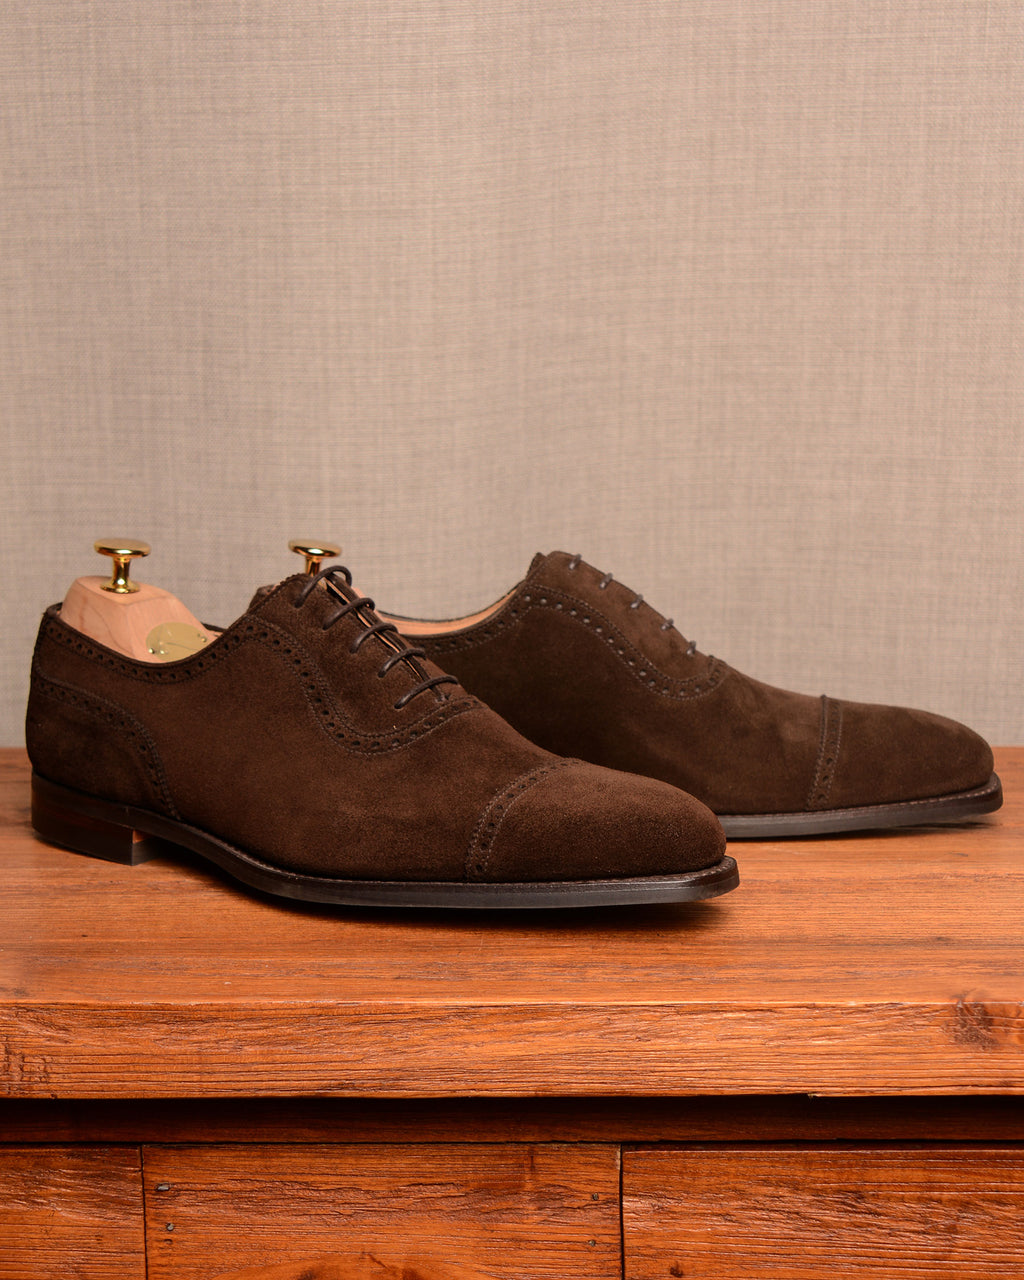 Crockett & Jones Westbourne - Dark Brown Suede